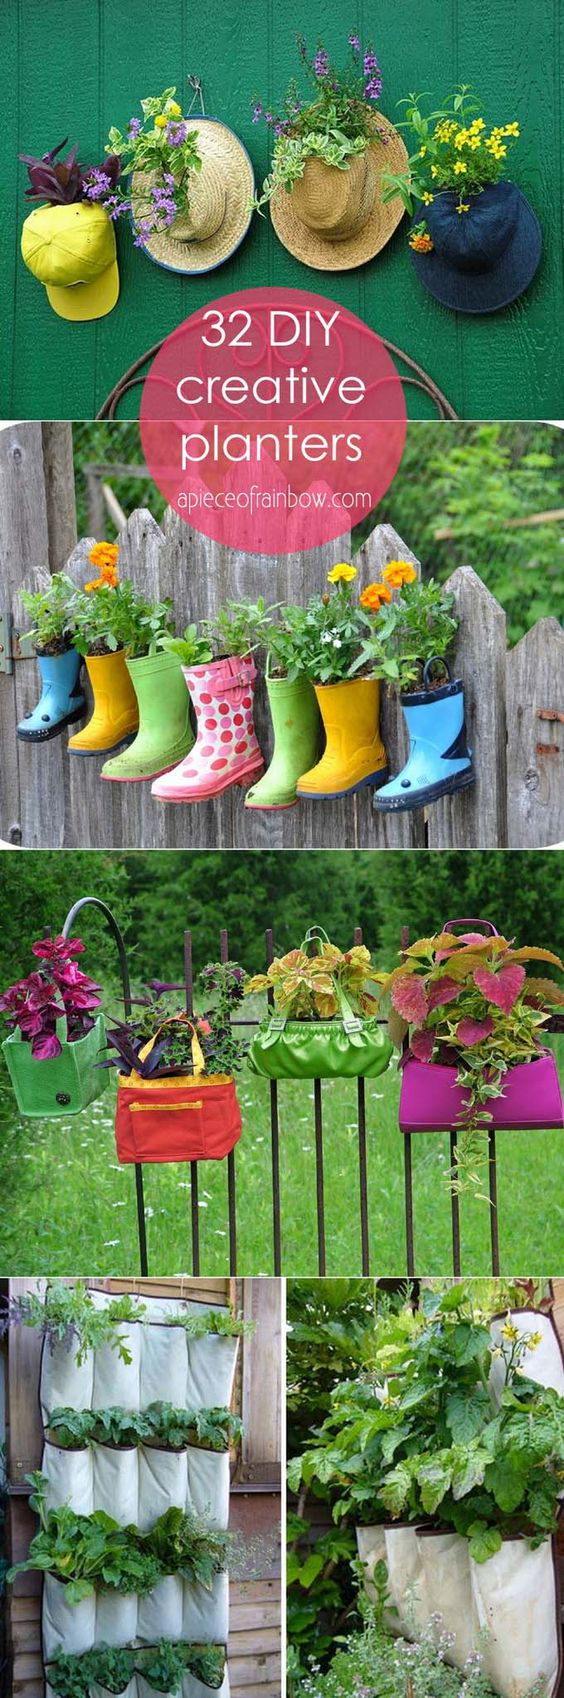 How To Turn Anything Into A Planter 32 Creative Diy 400 x 300